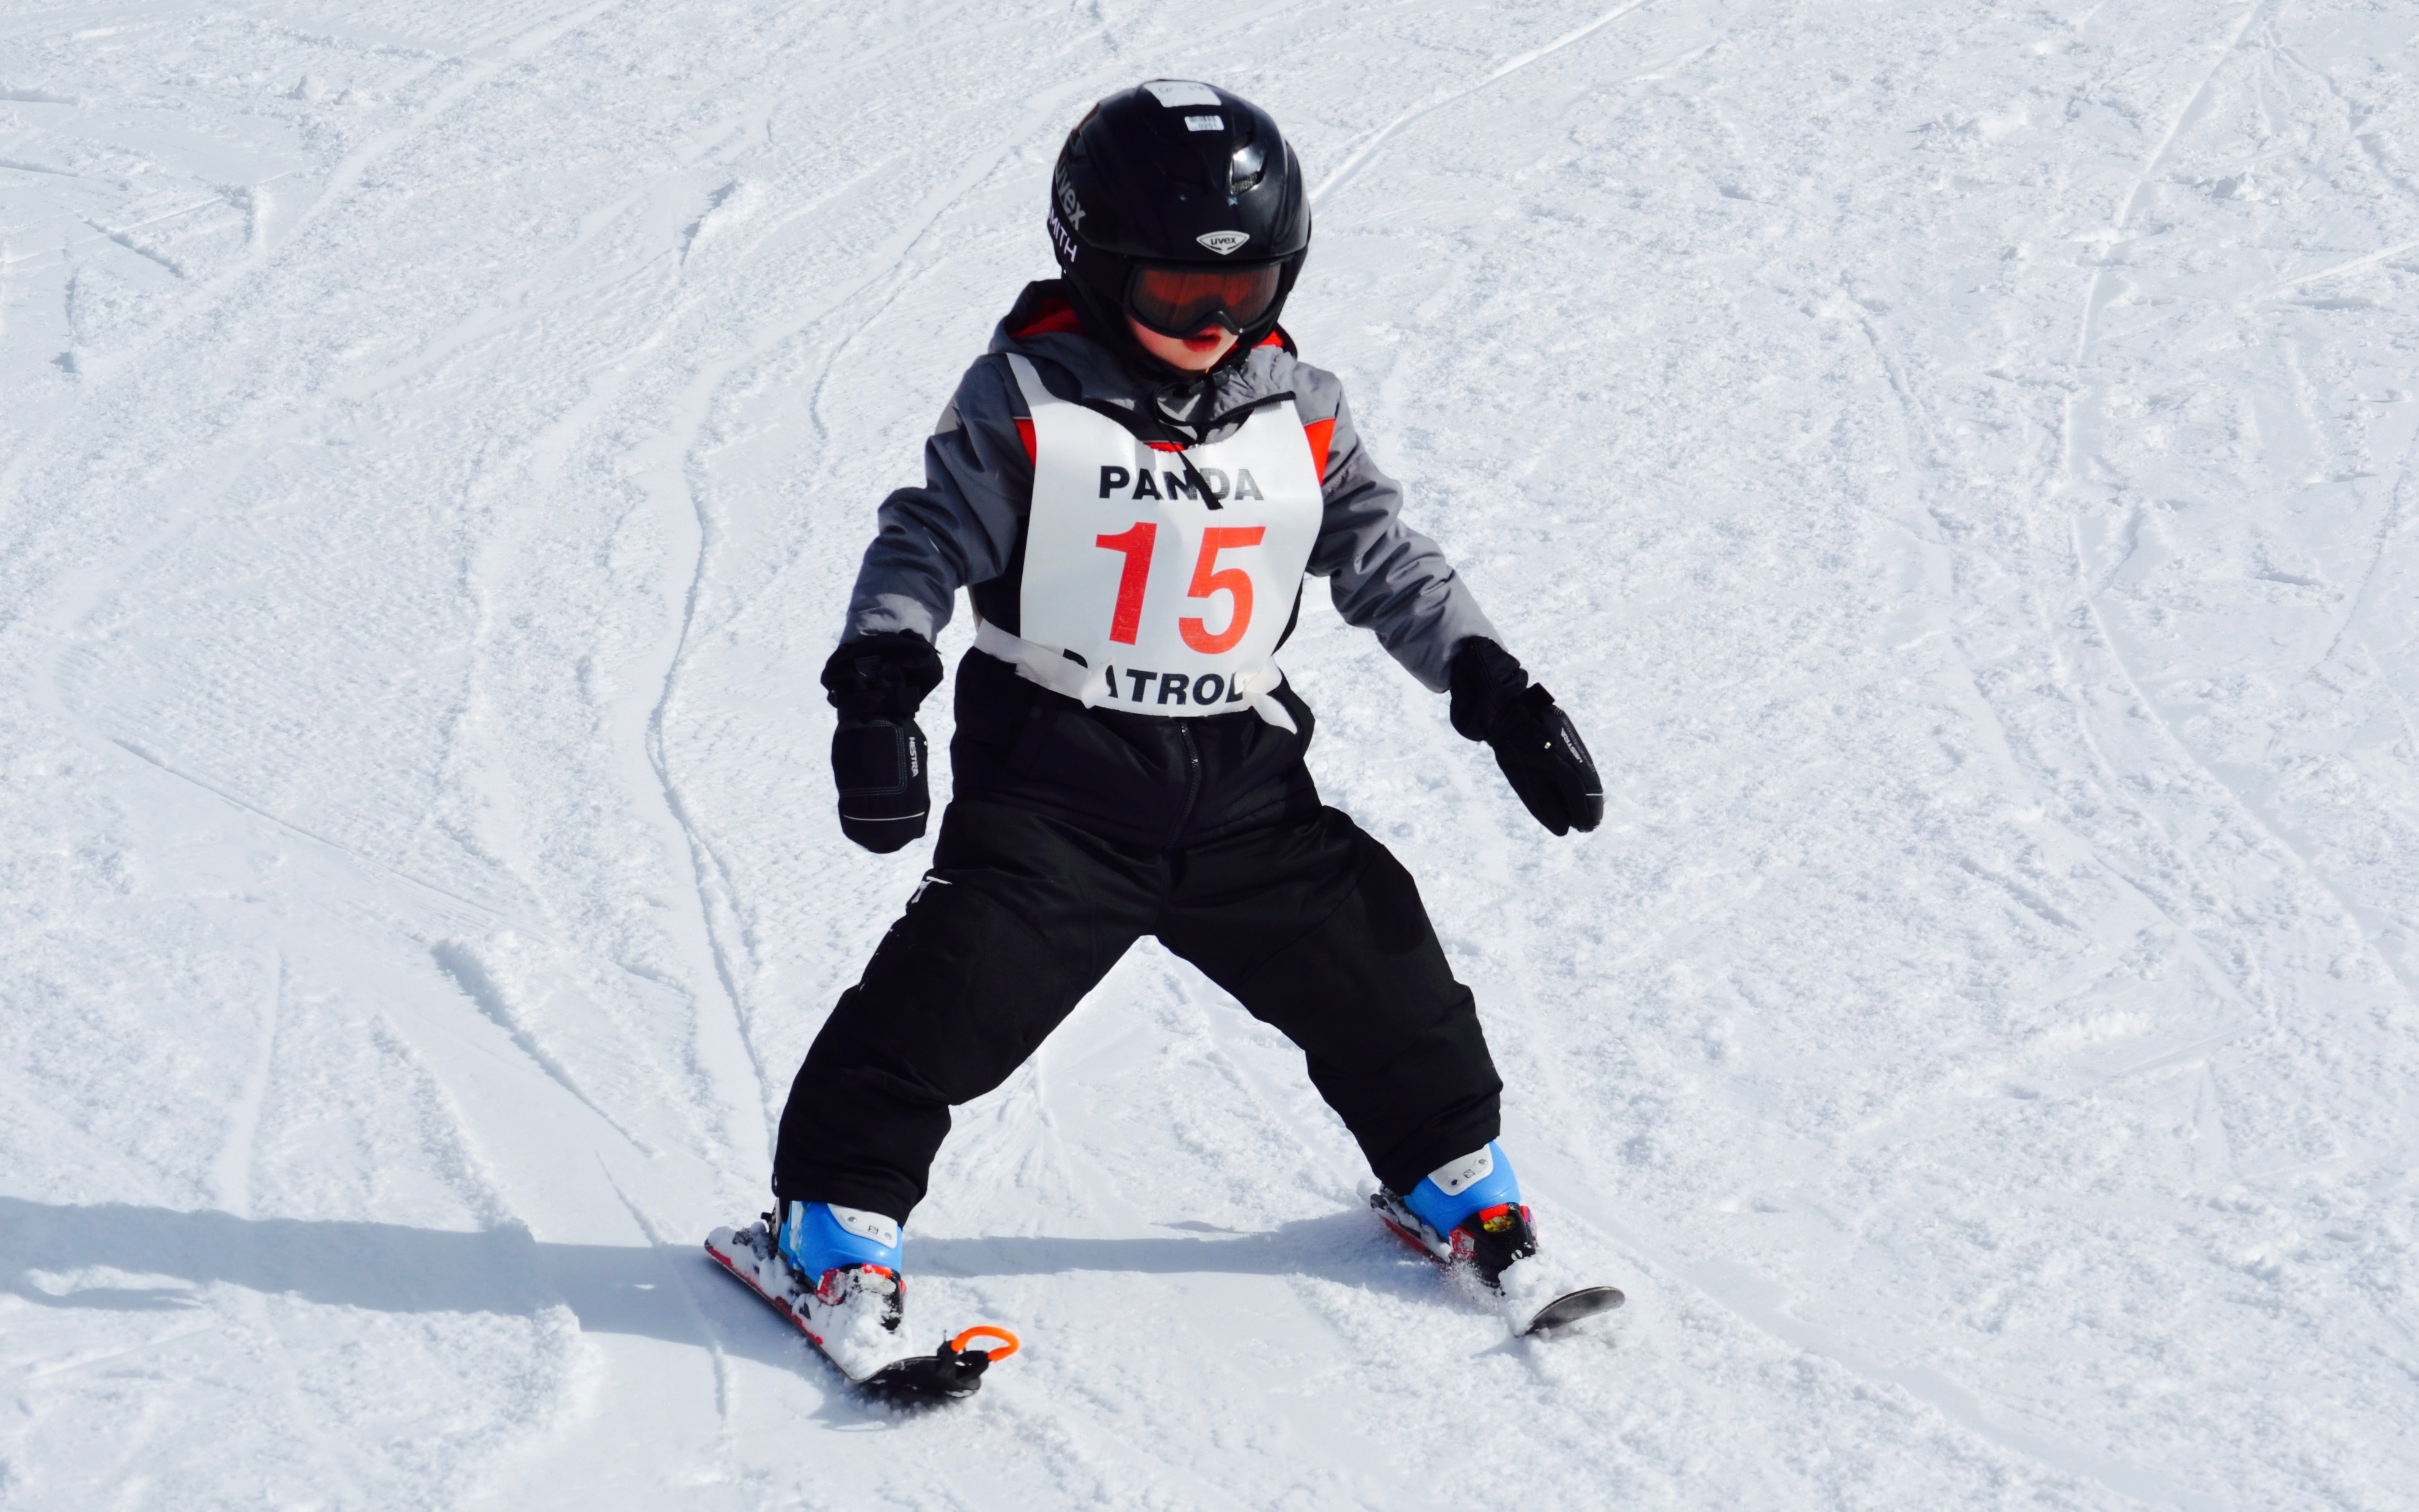 A toddler skiing for the first time down a slope covered in white snow.